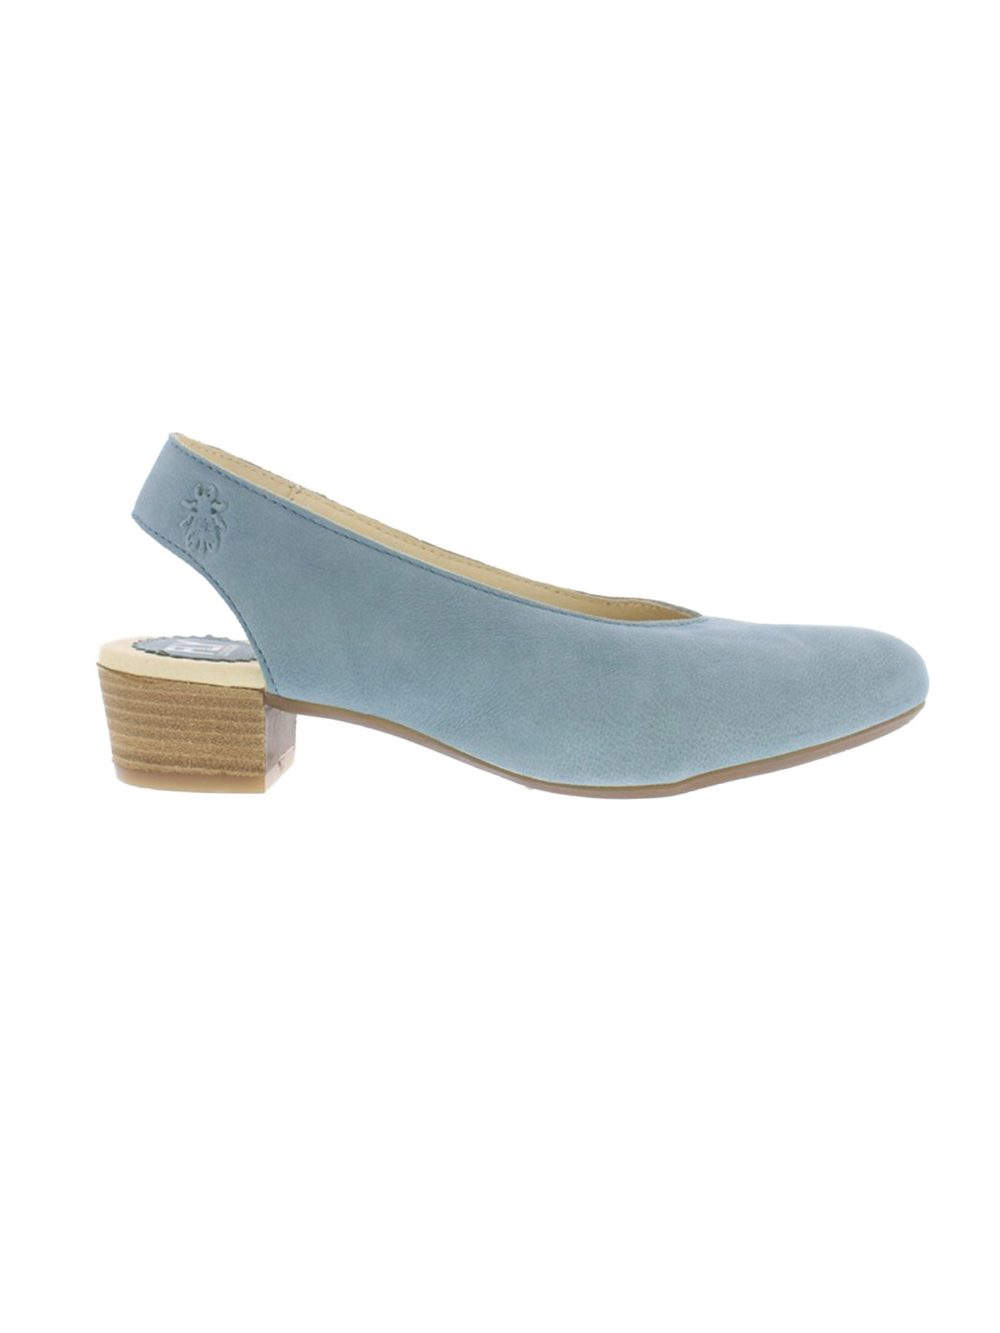 Loma Sandal Fly London Katie Kerr Women's Shoes